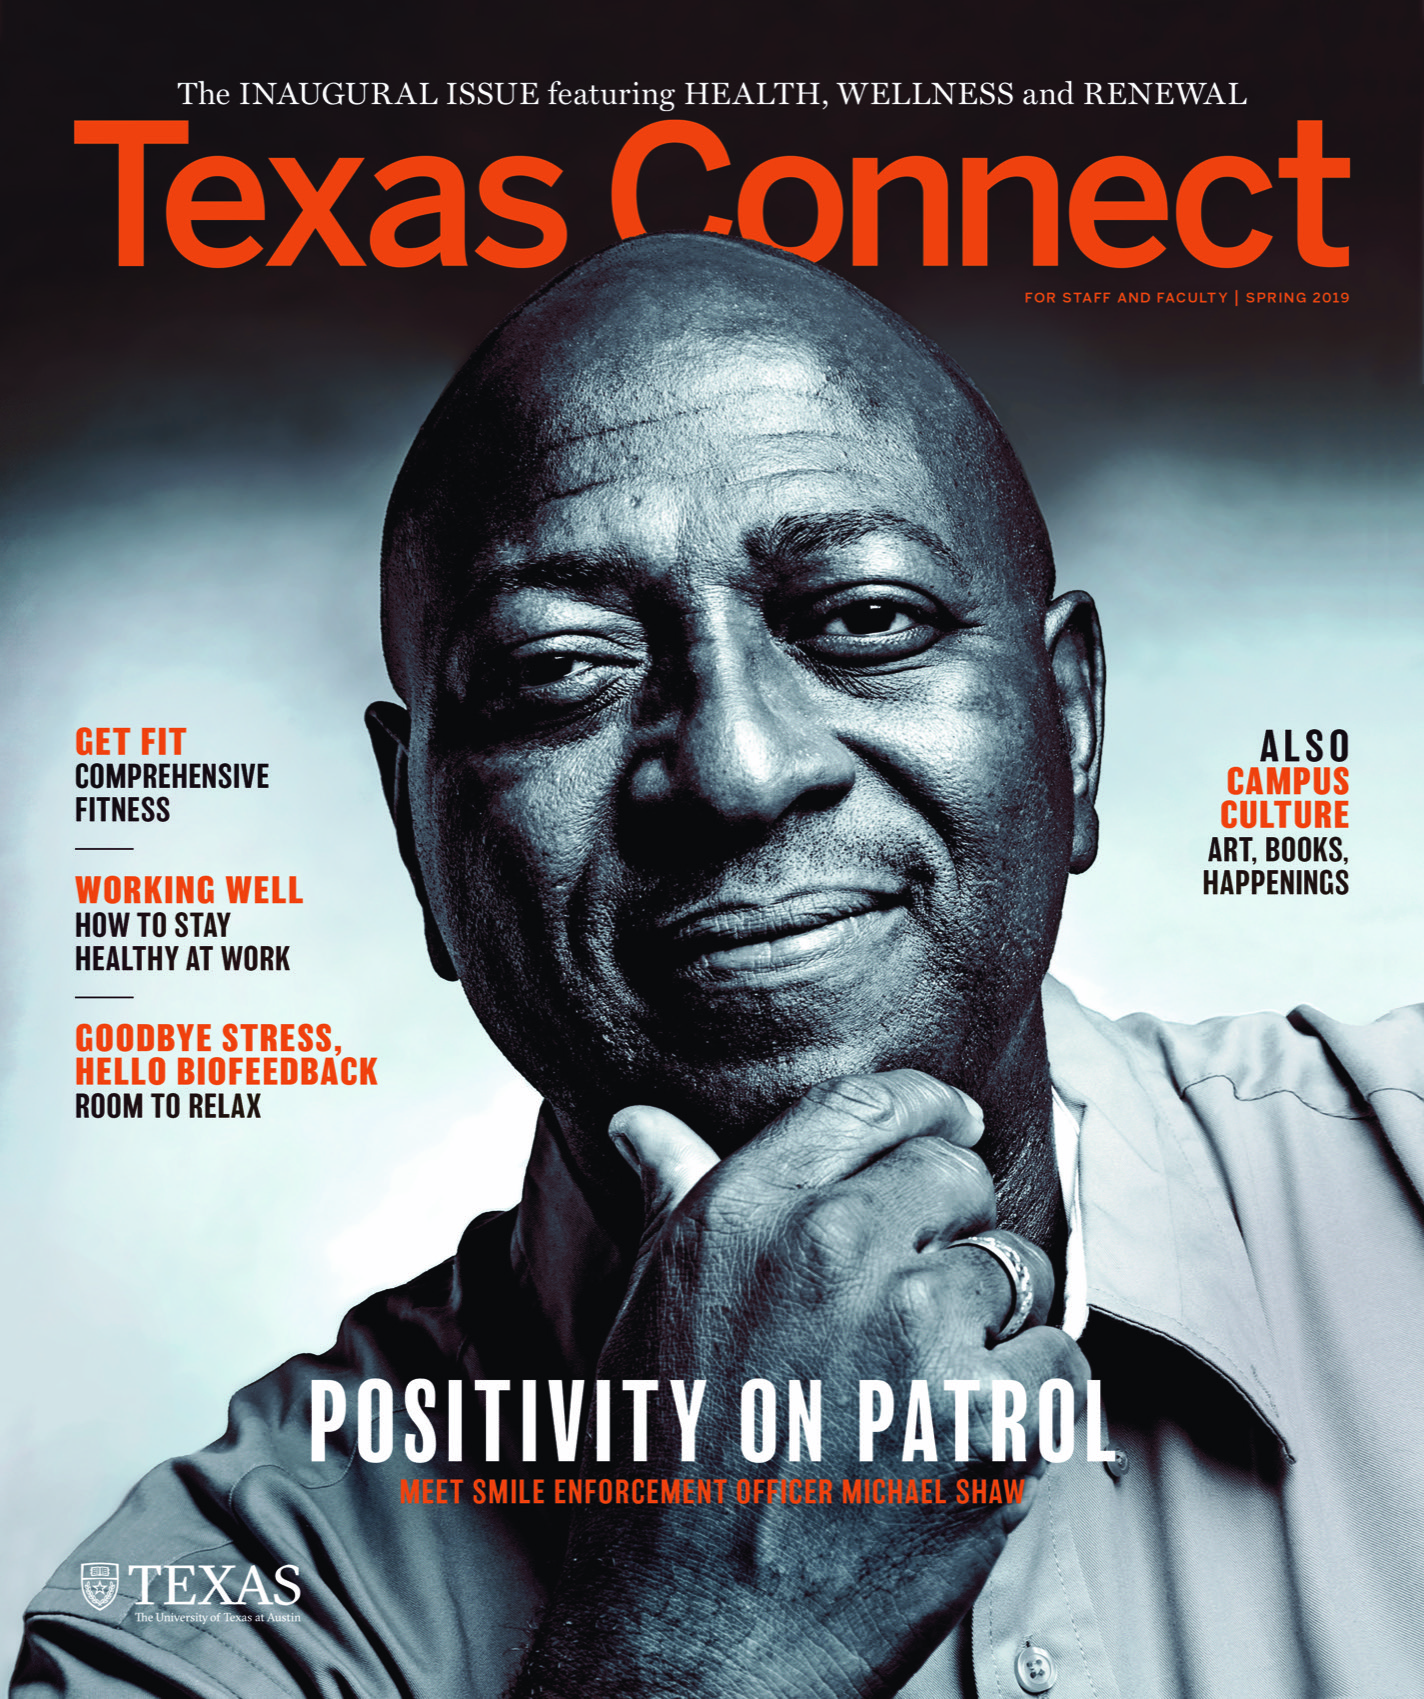 Cover of UT faculty magazine, Texas Connect